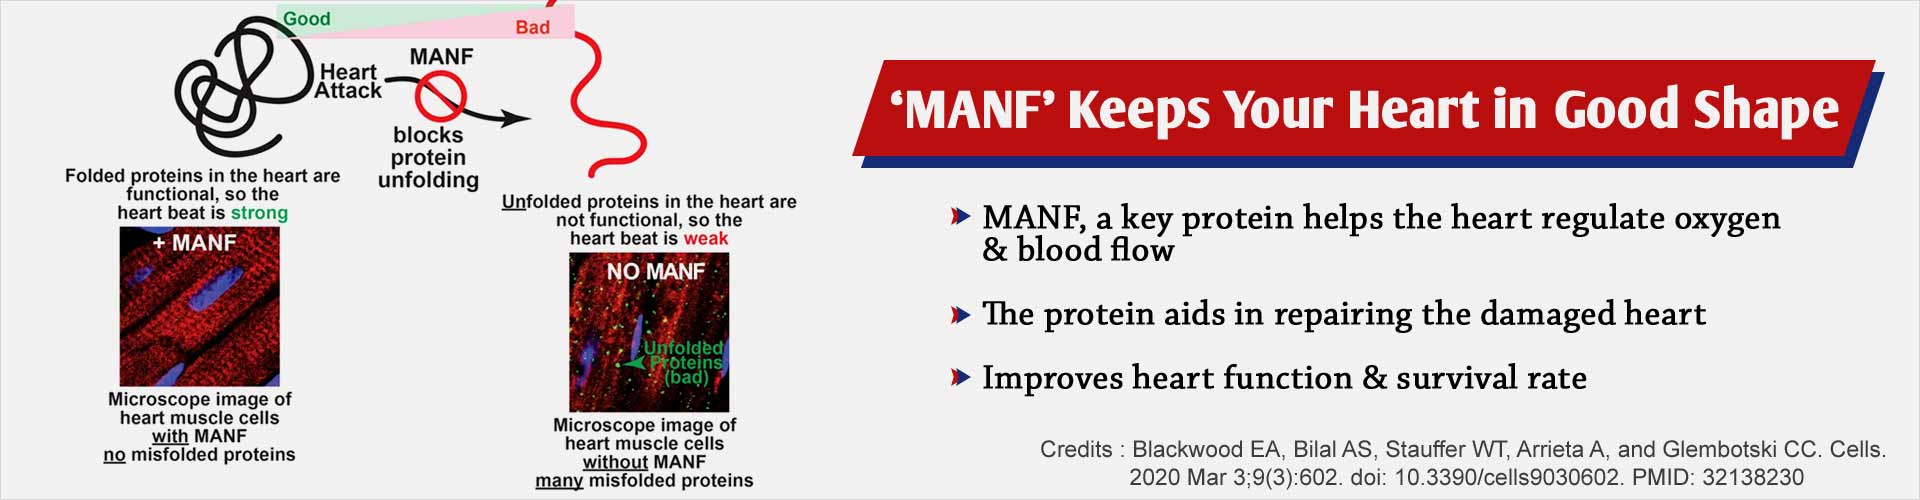 Key Protein Discovered Helps Repair Damaged Heart